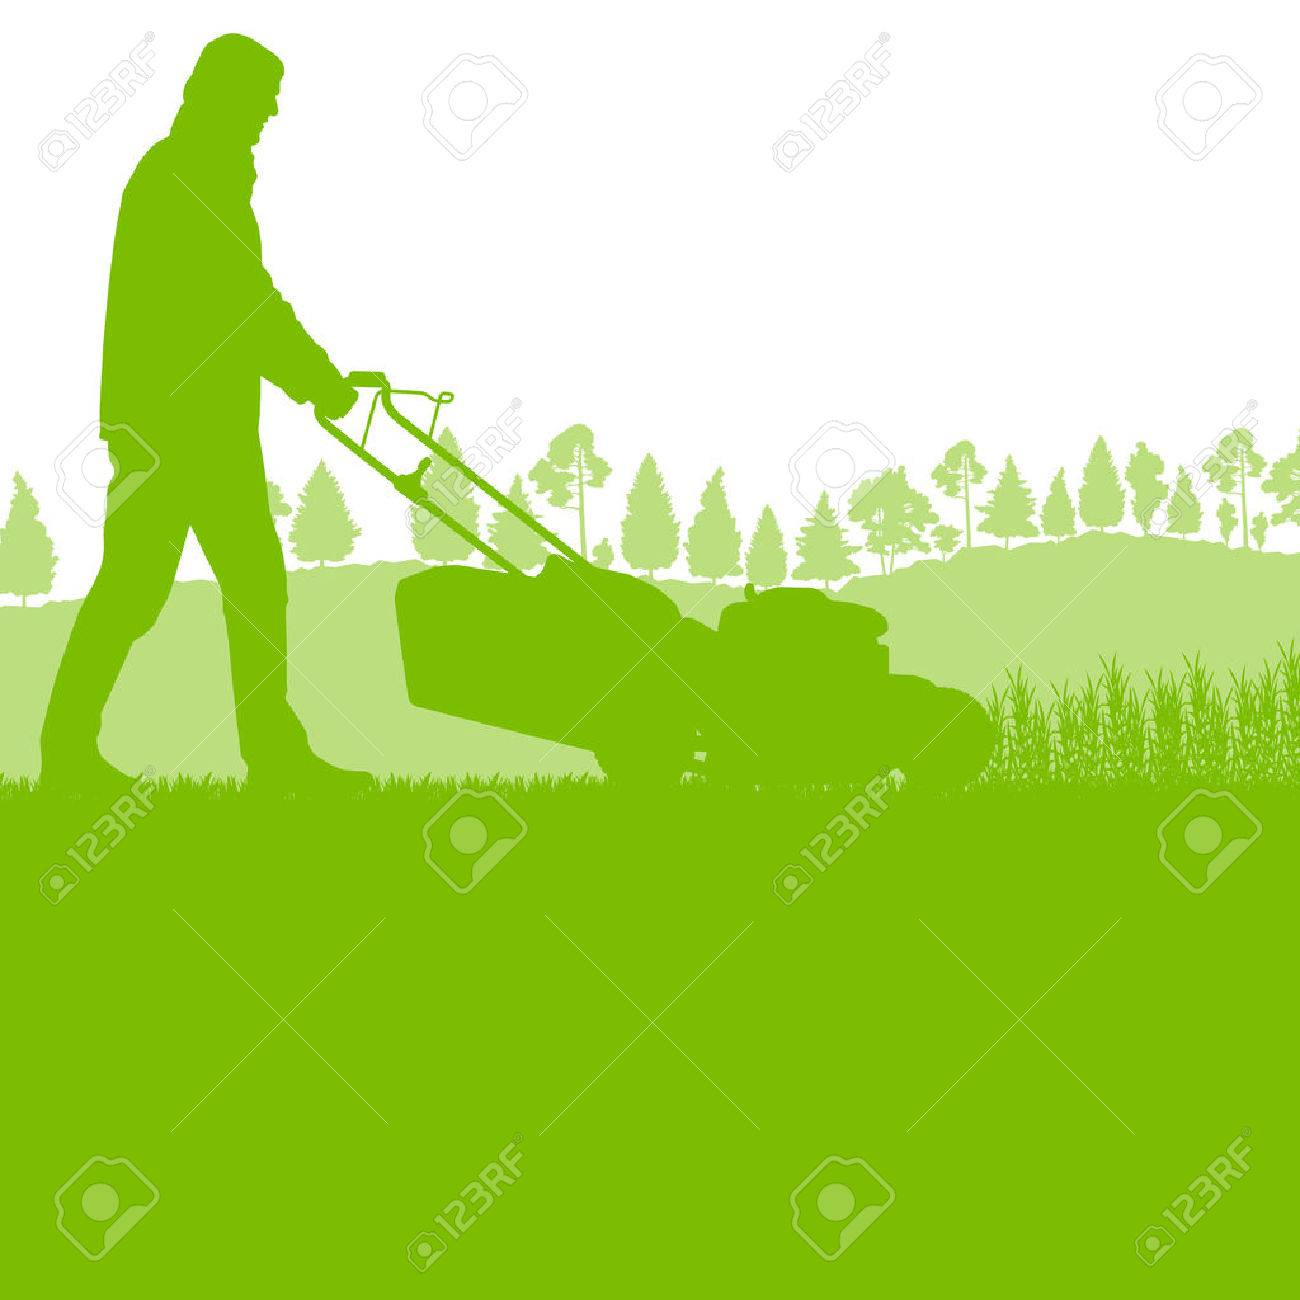 Man with lawn mover cutting grass vector background ecology concept for poster - 39203038